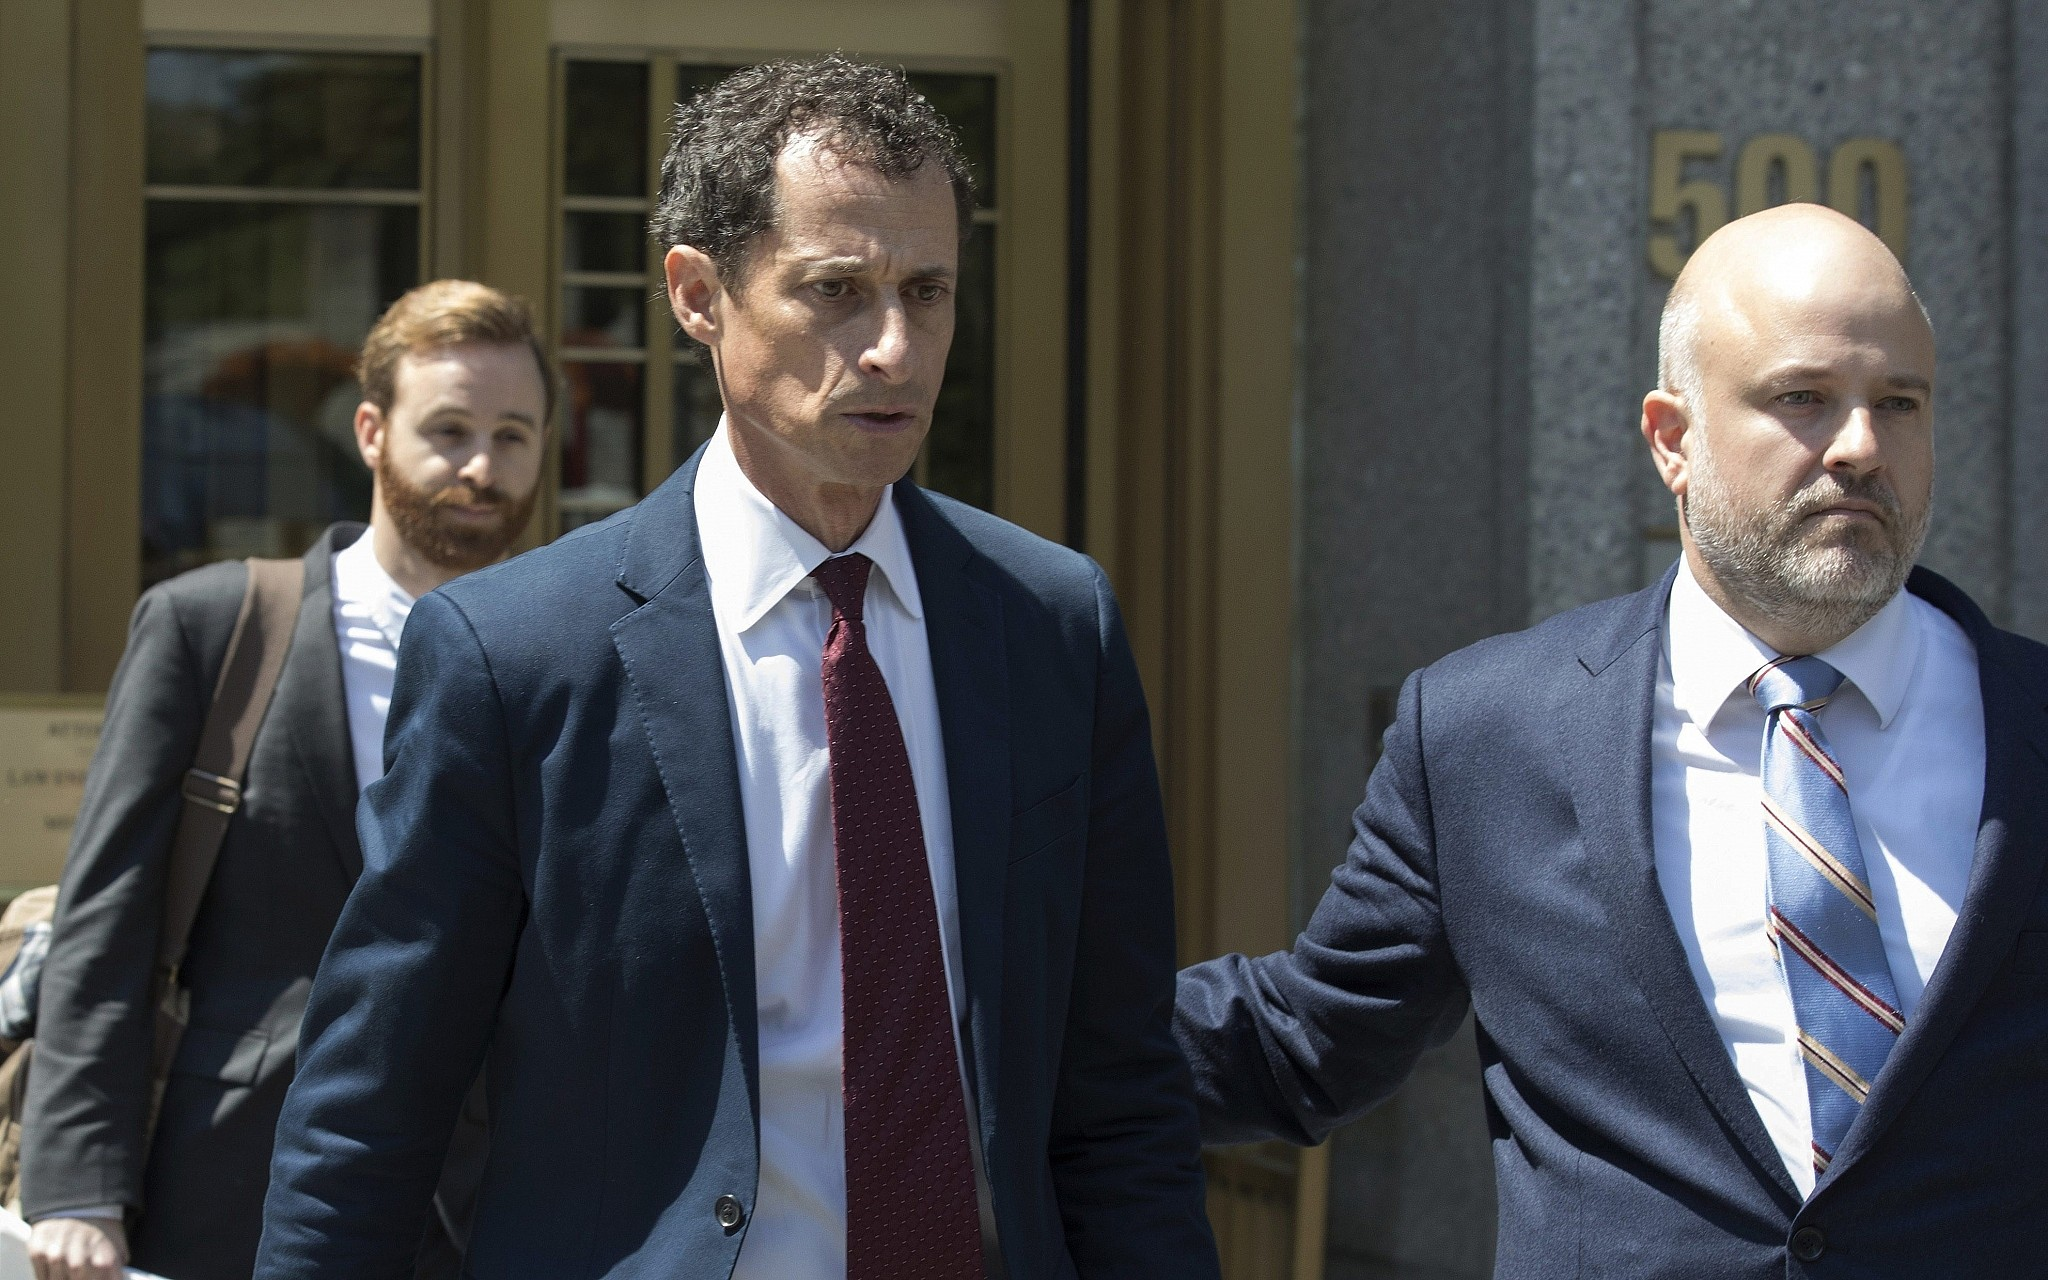 Anthony Weiner Gets 21 Months for Minor Sexting Scandal